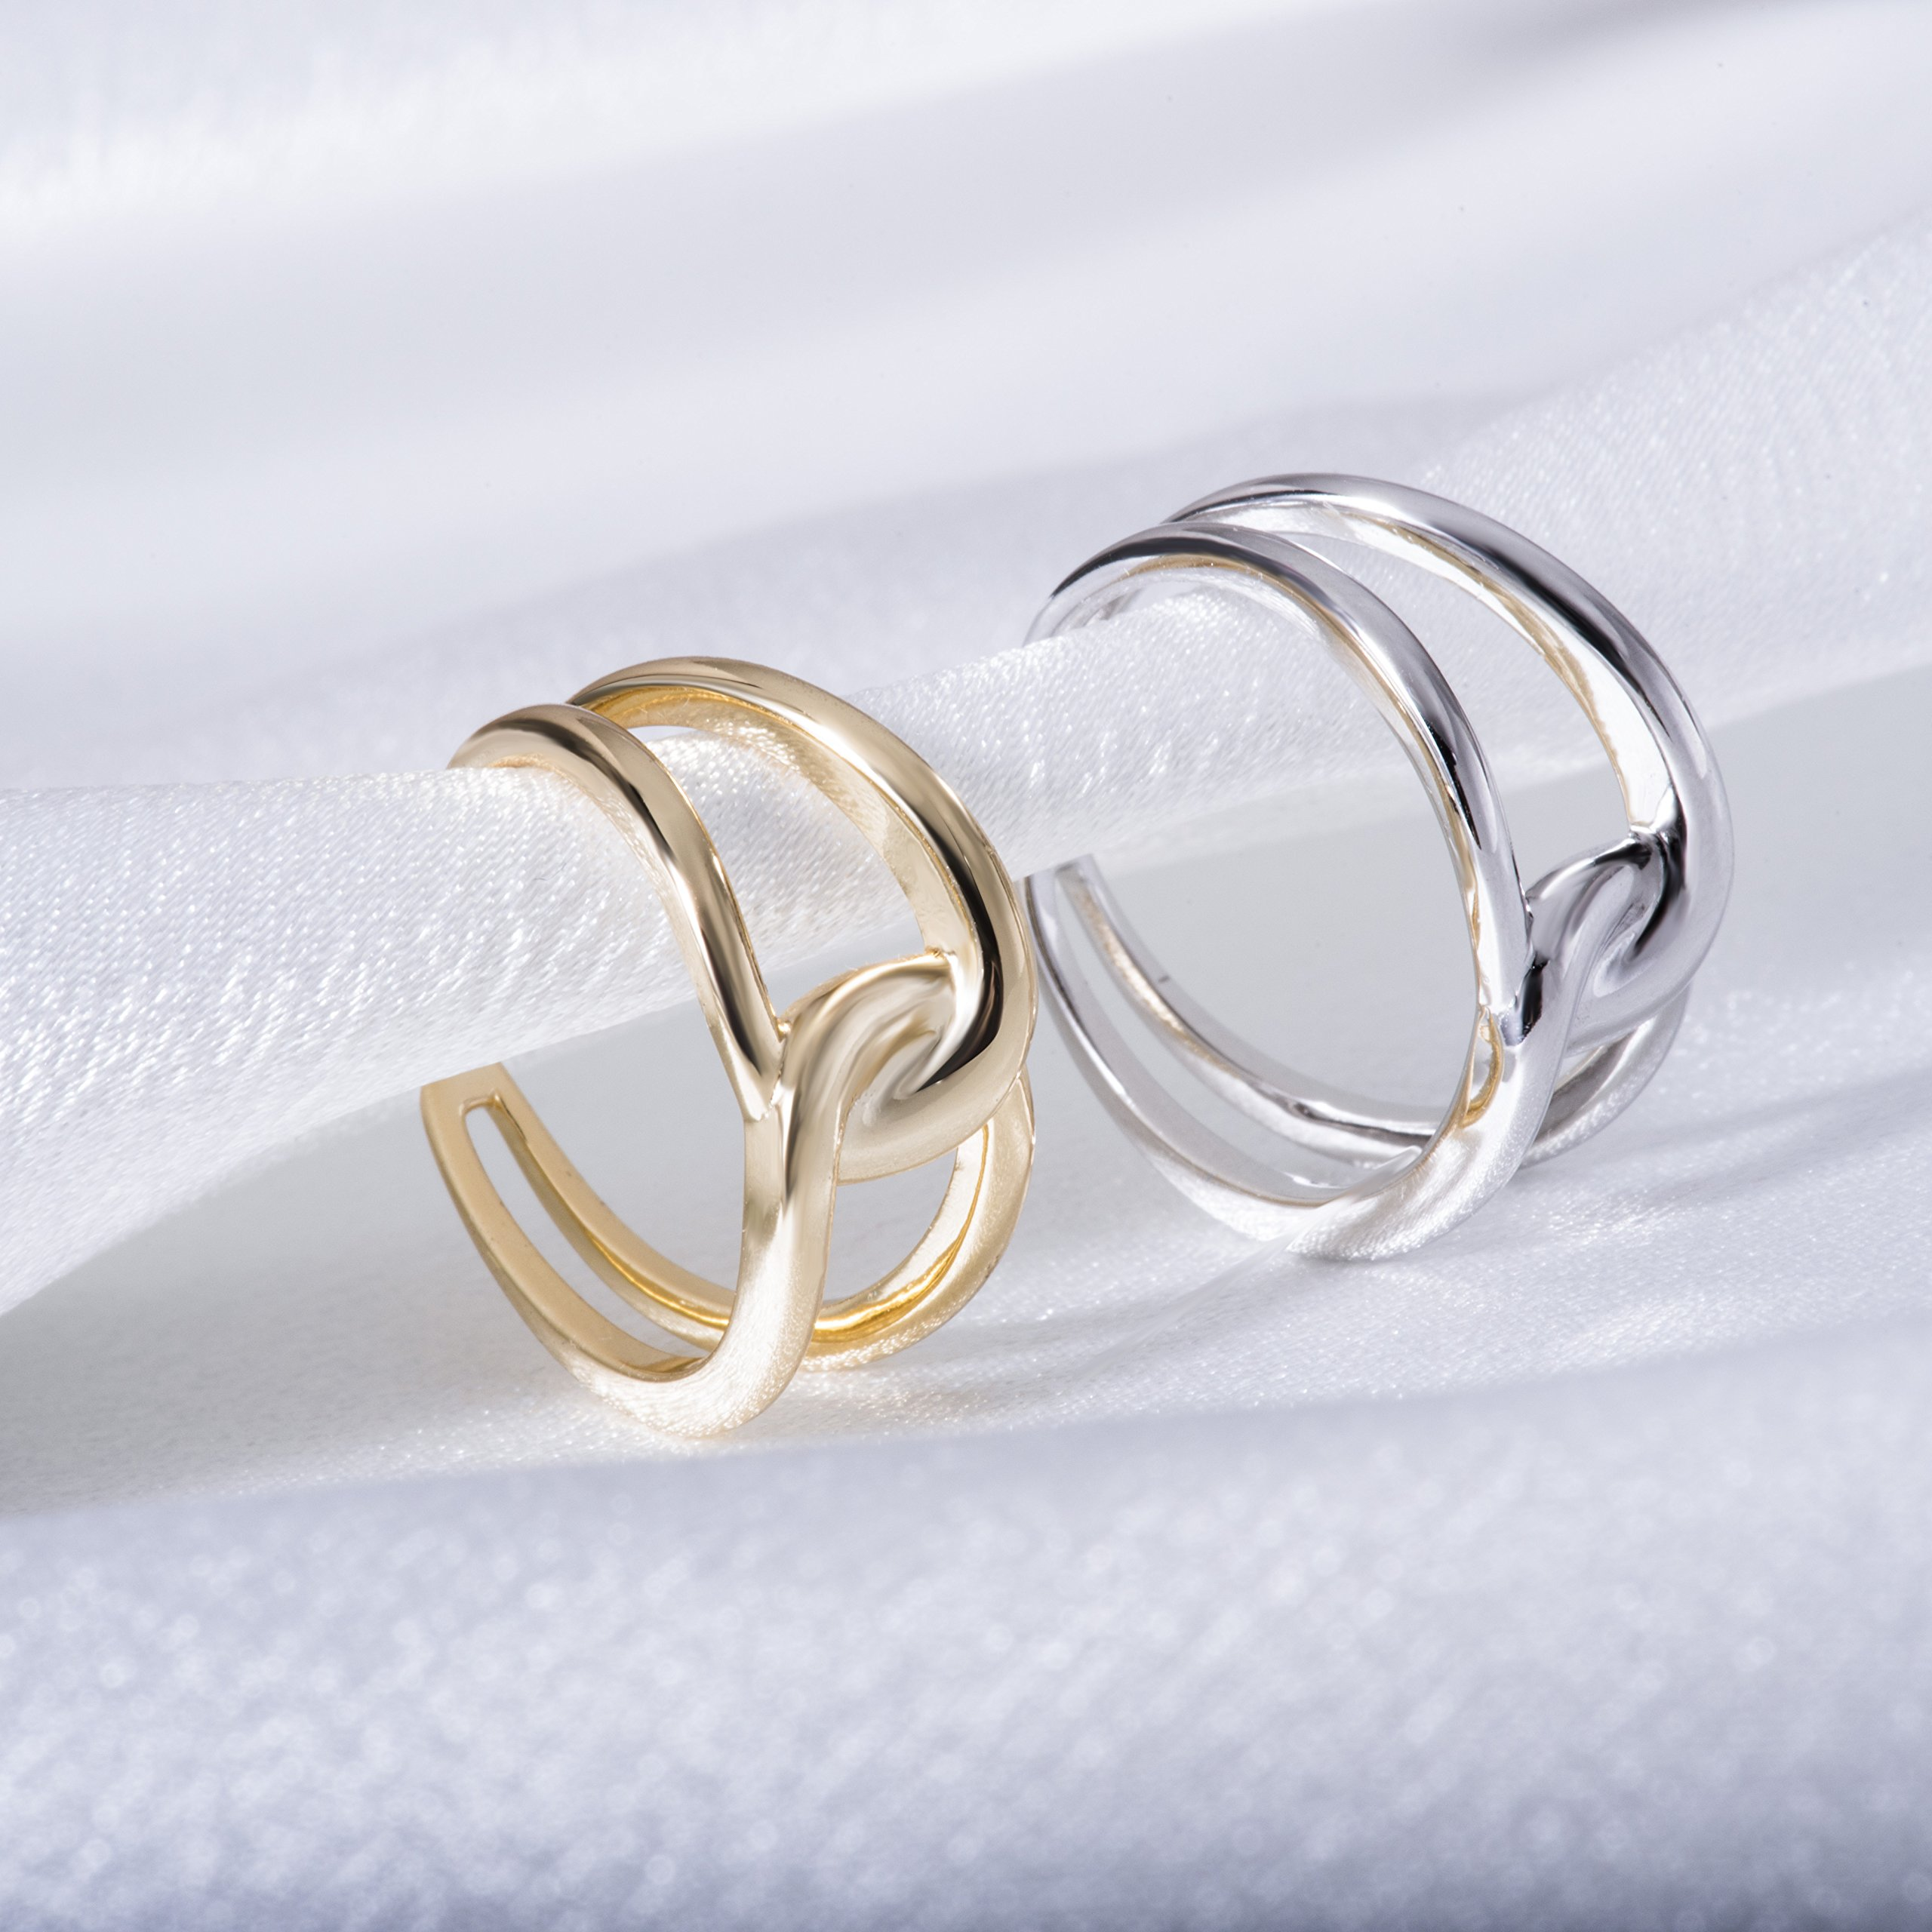 Fonsalette Gold Plated Infinity Ring Sterling Silver Open Twist Ring Two Band Ring (silver) by Fonsalette (Image #6)